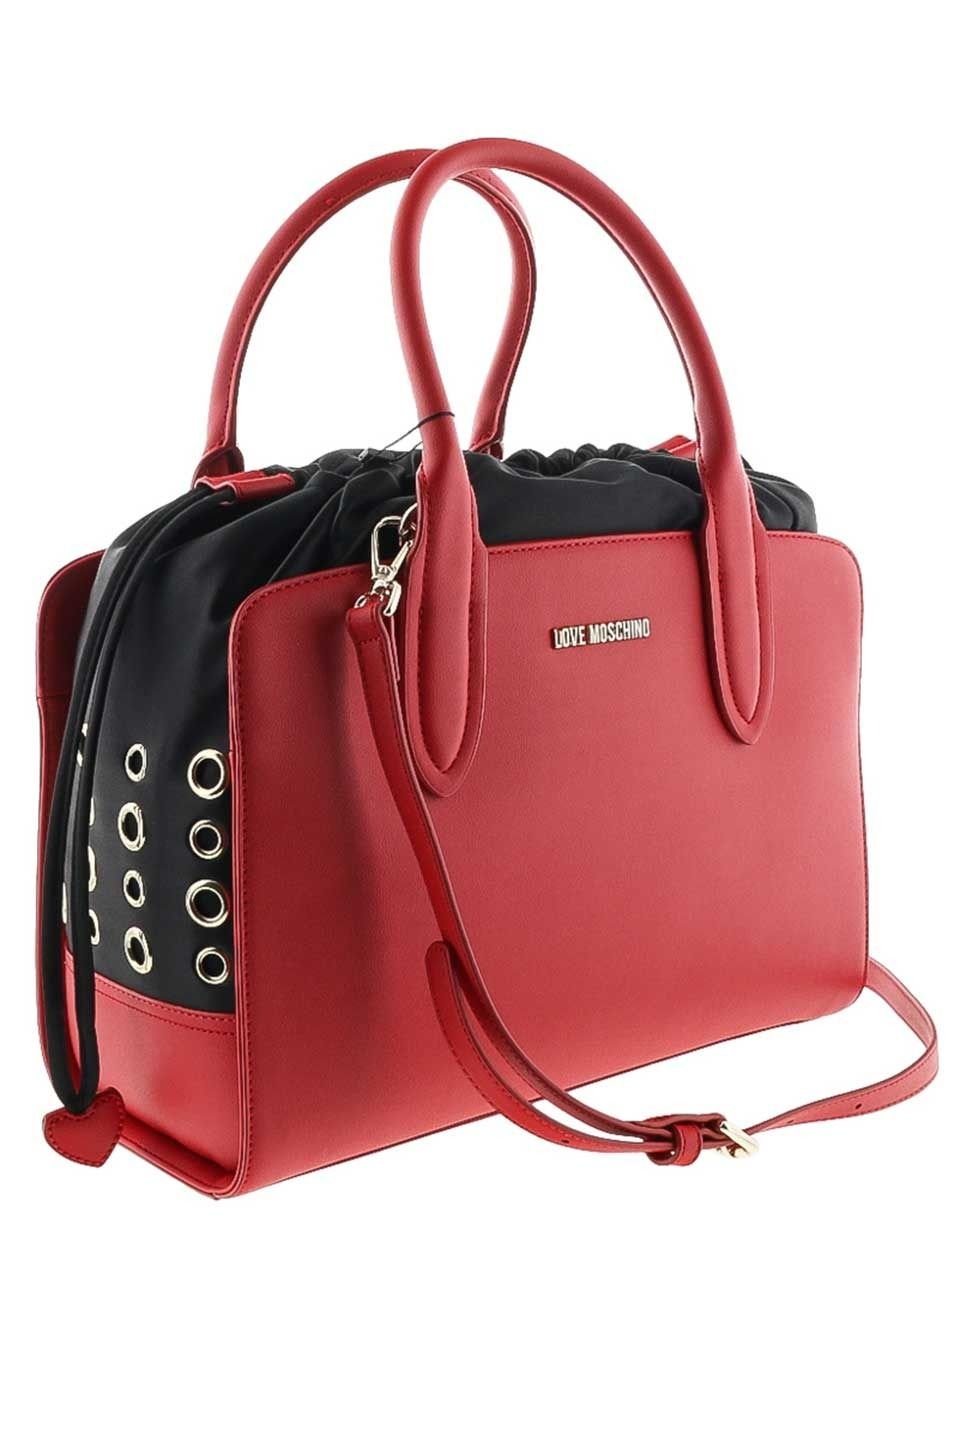 Love Moschino - Amelia Shoulder Bag in Red